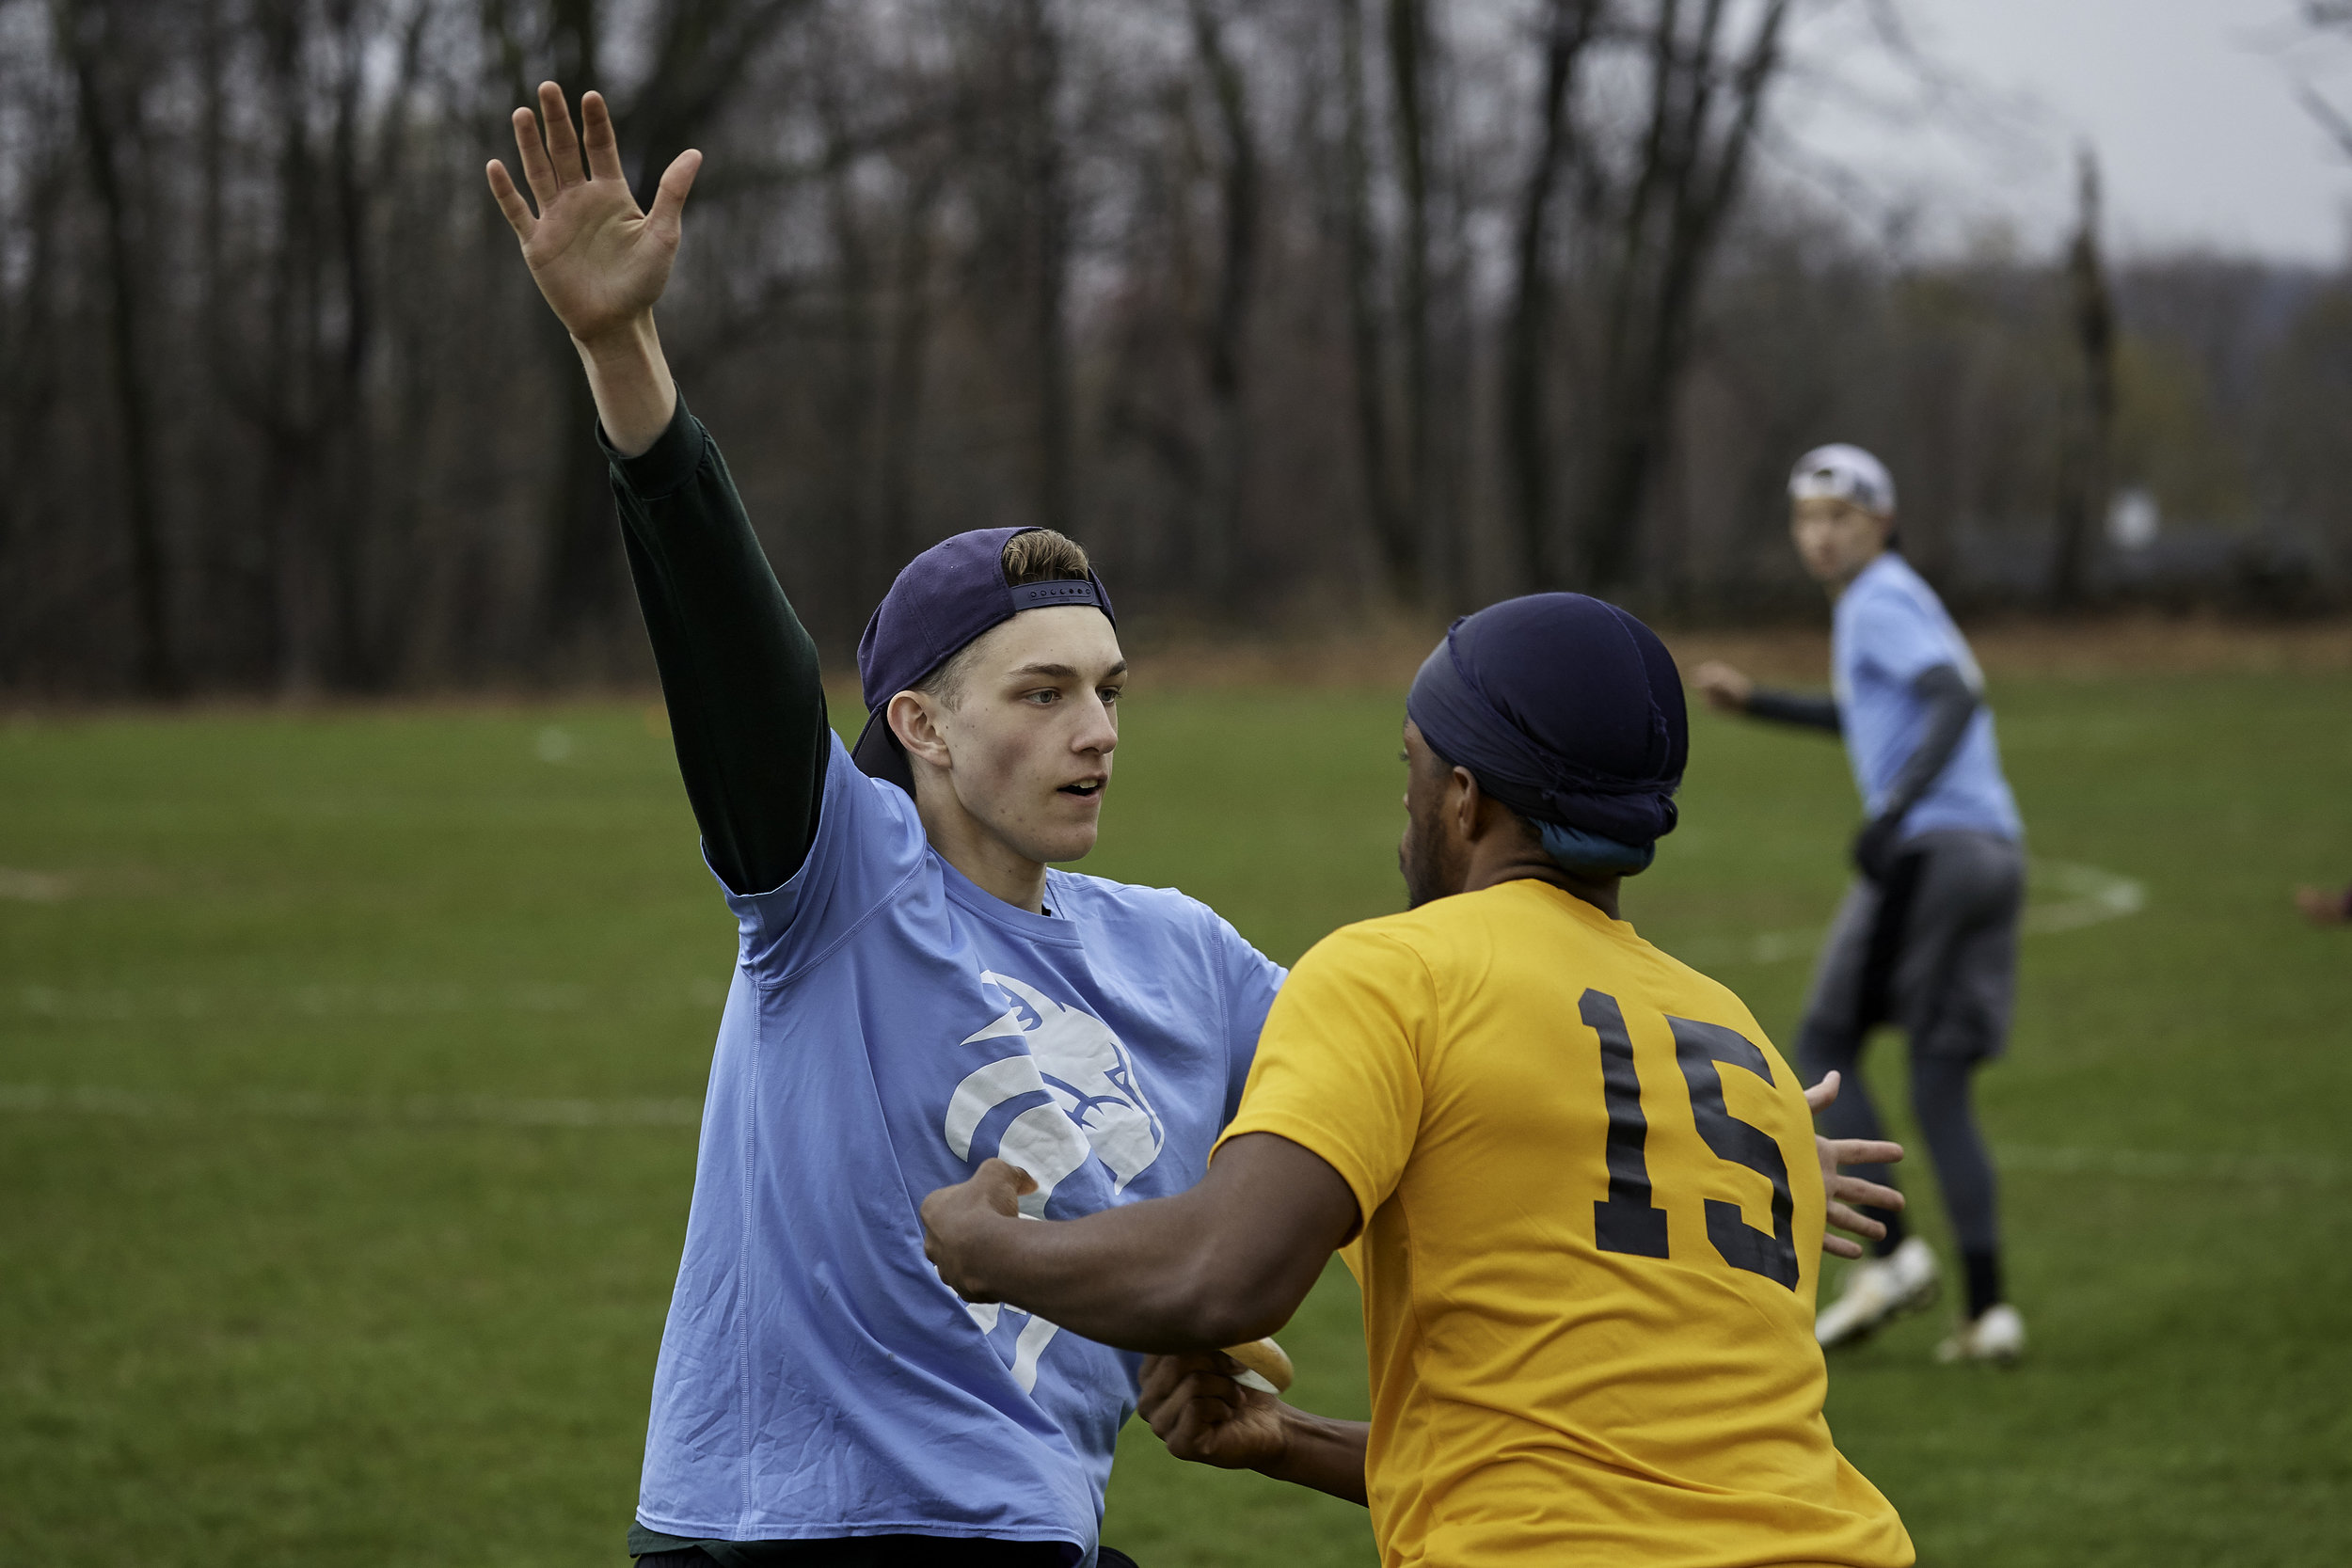 Ultimate Frisbee vs. Eagle Hill School - May 3, 2019 - 188312.jpg